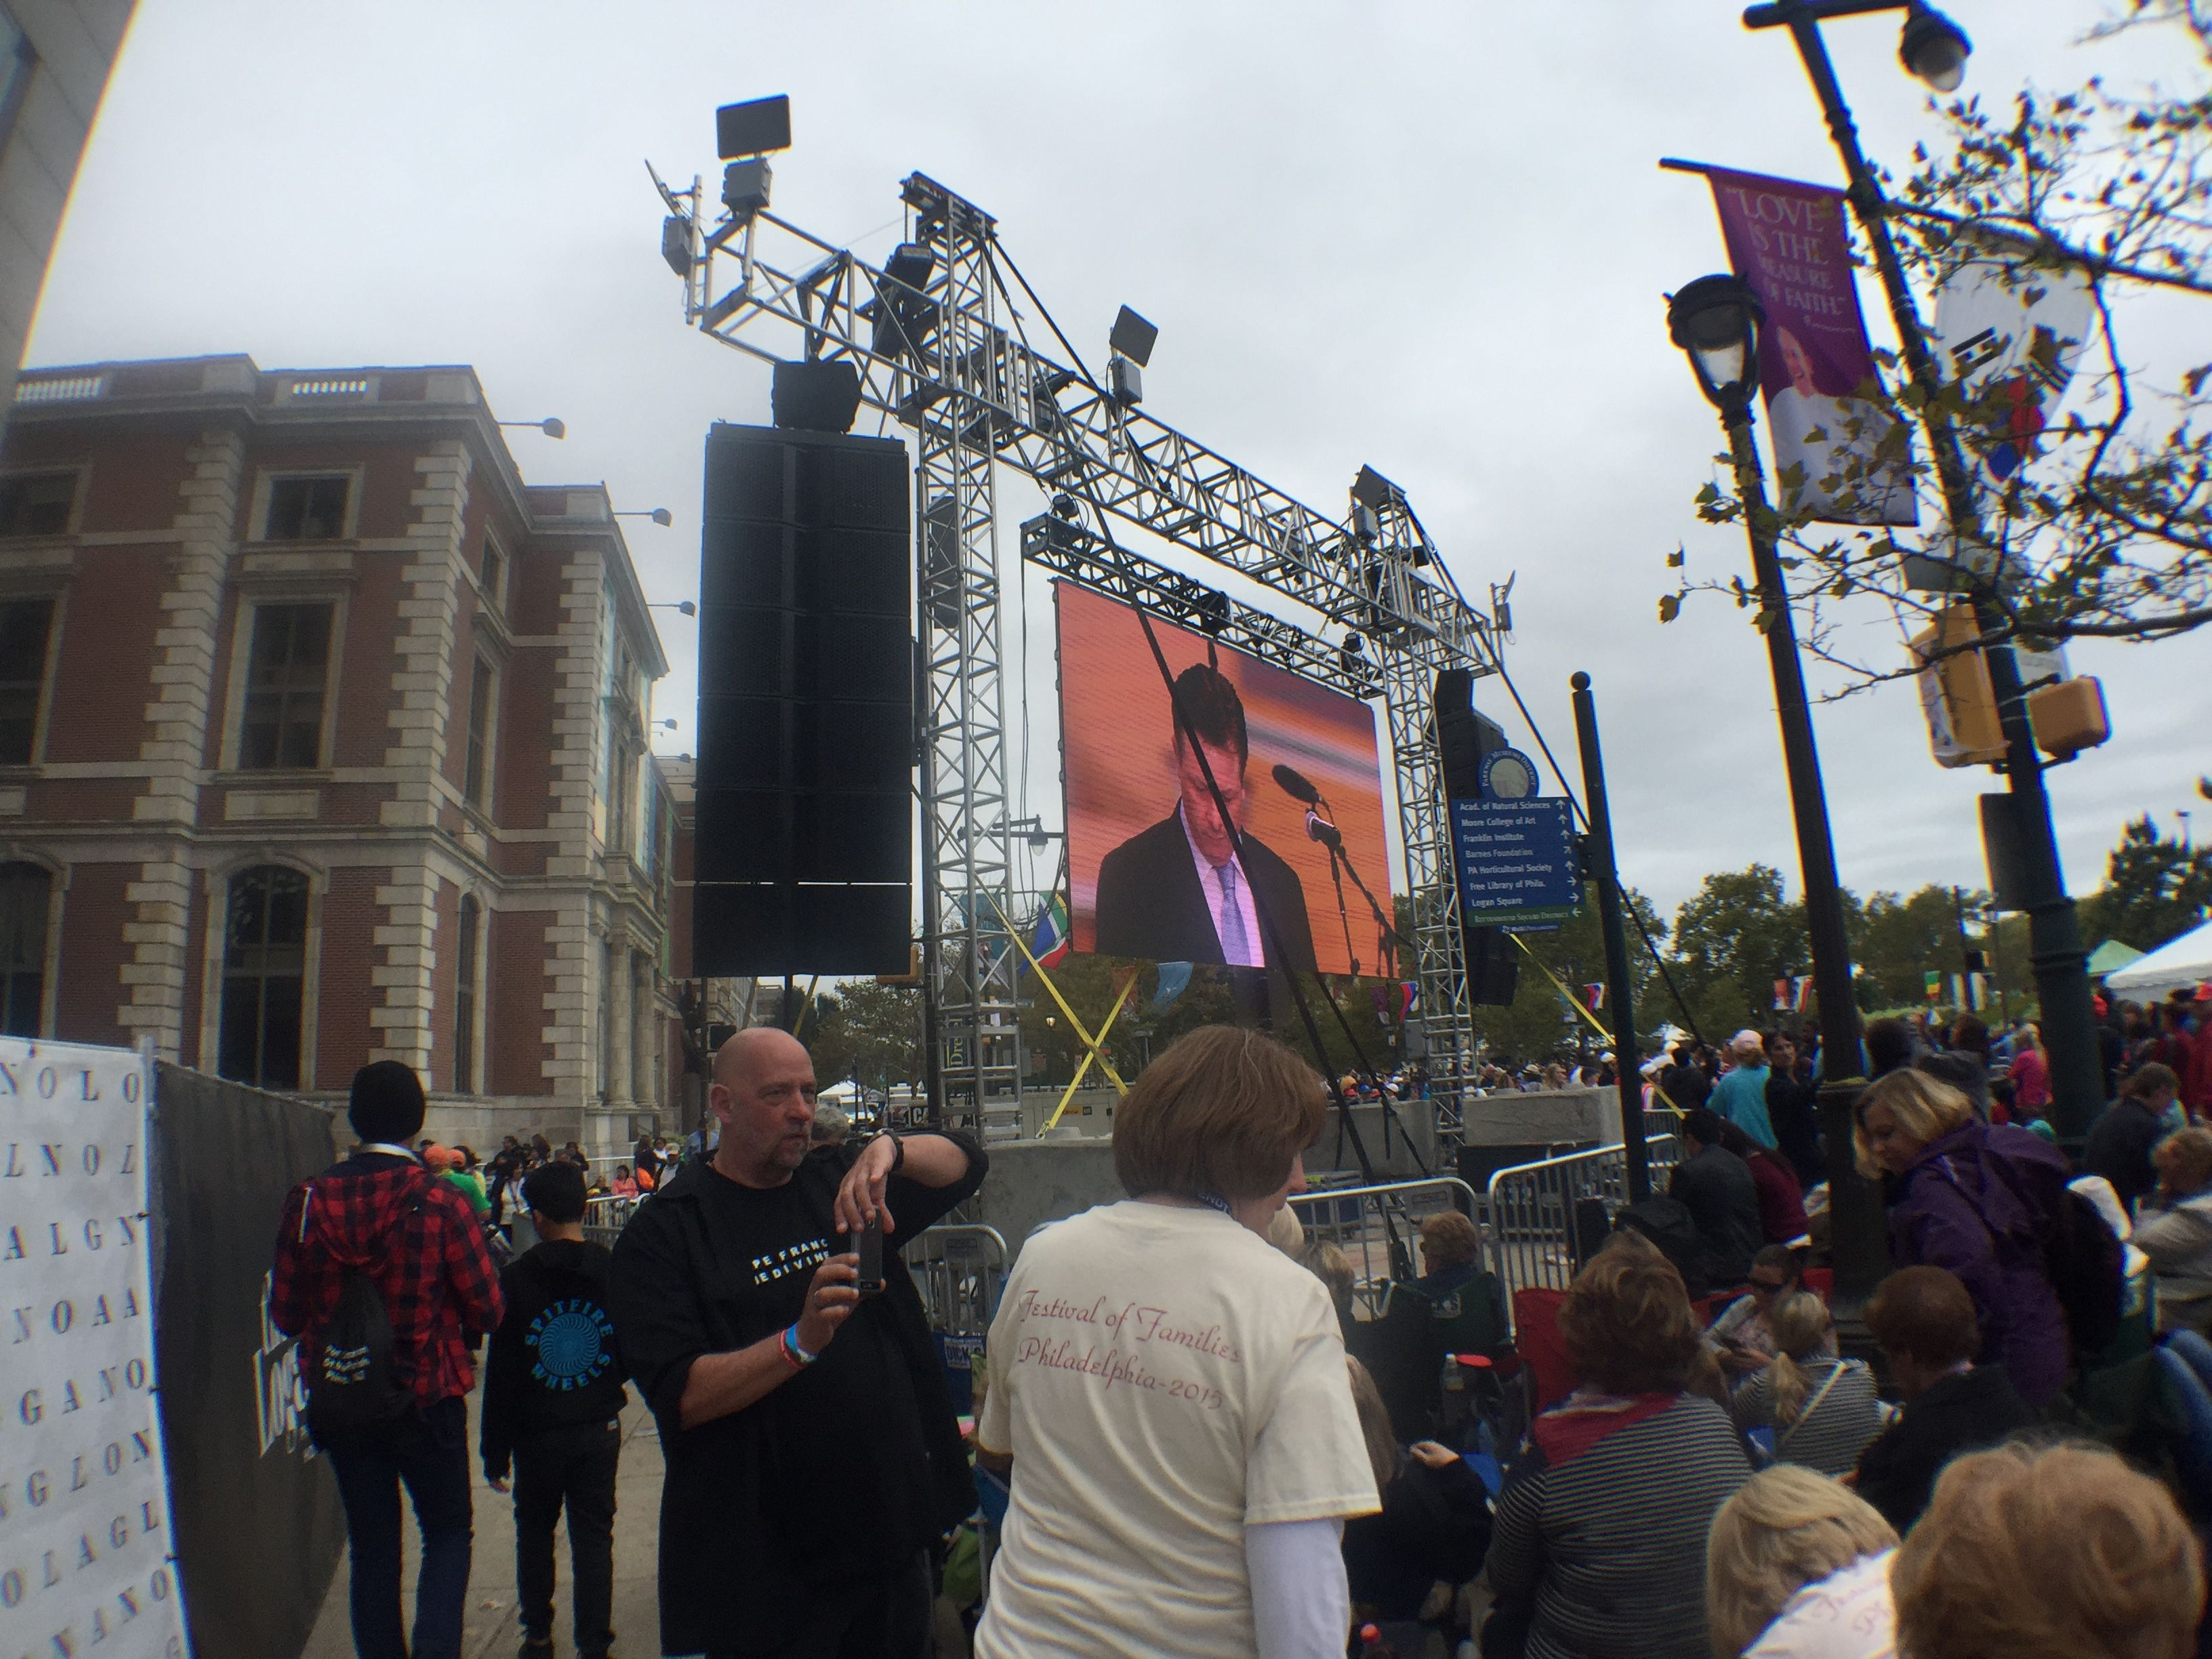 People gather by jumbotrons in Philly to watch the Mass.